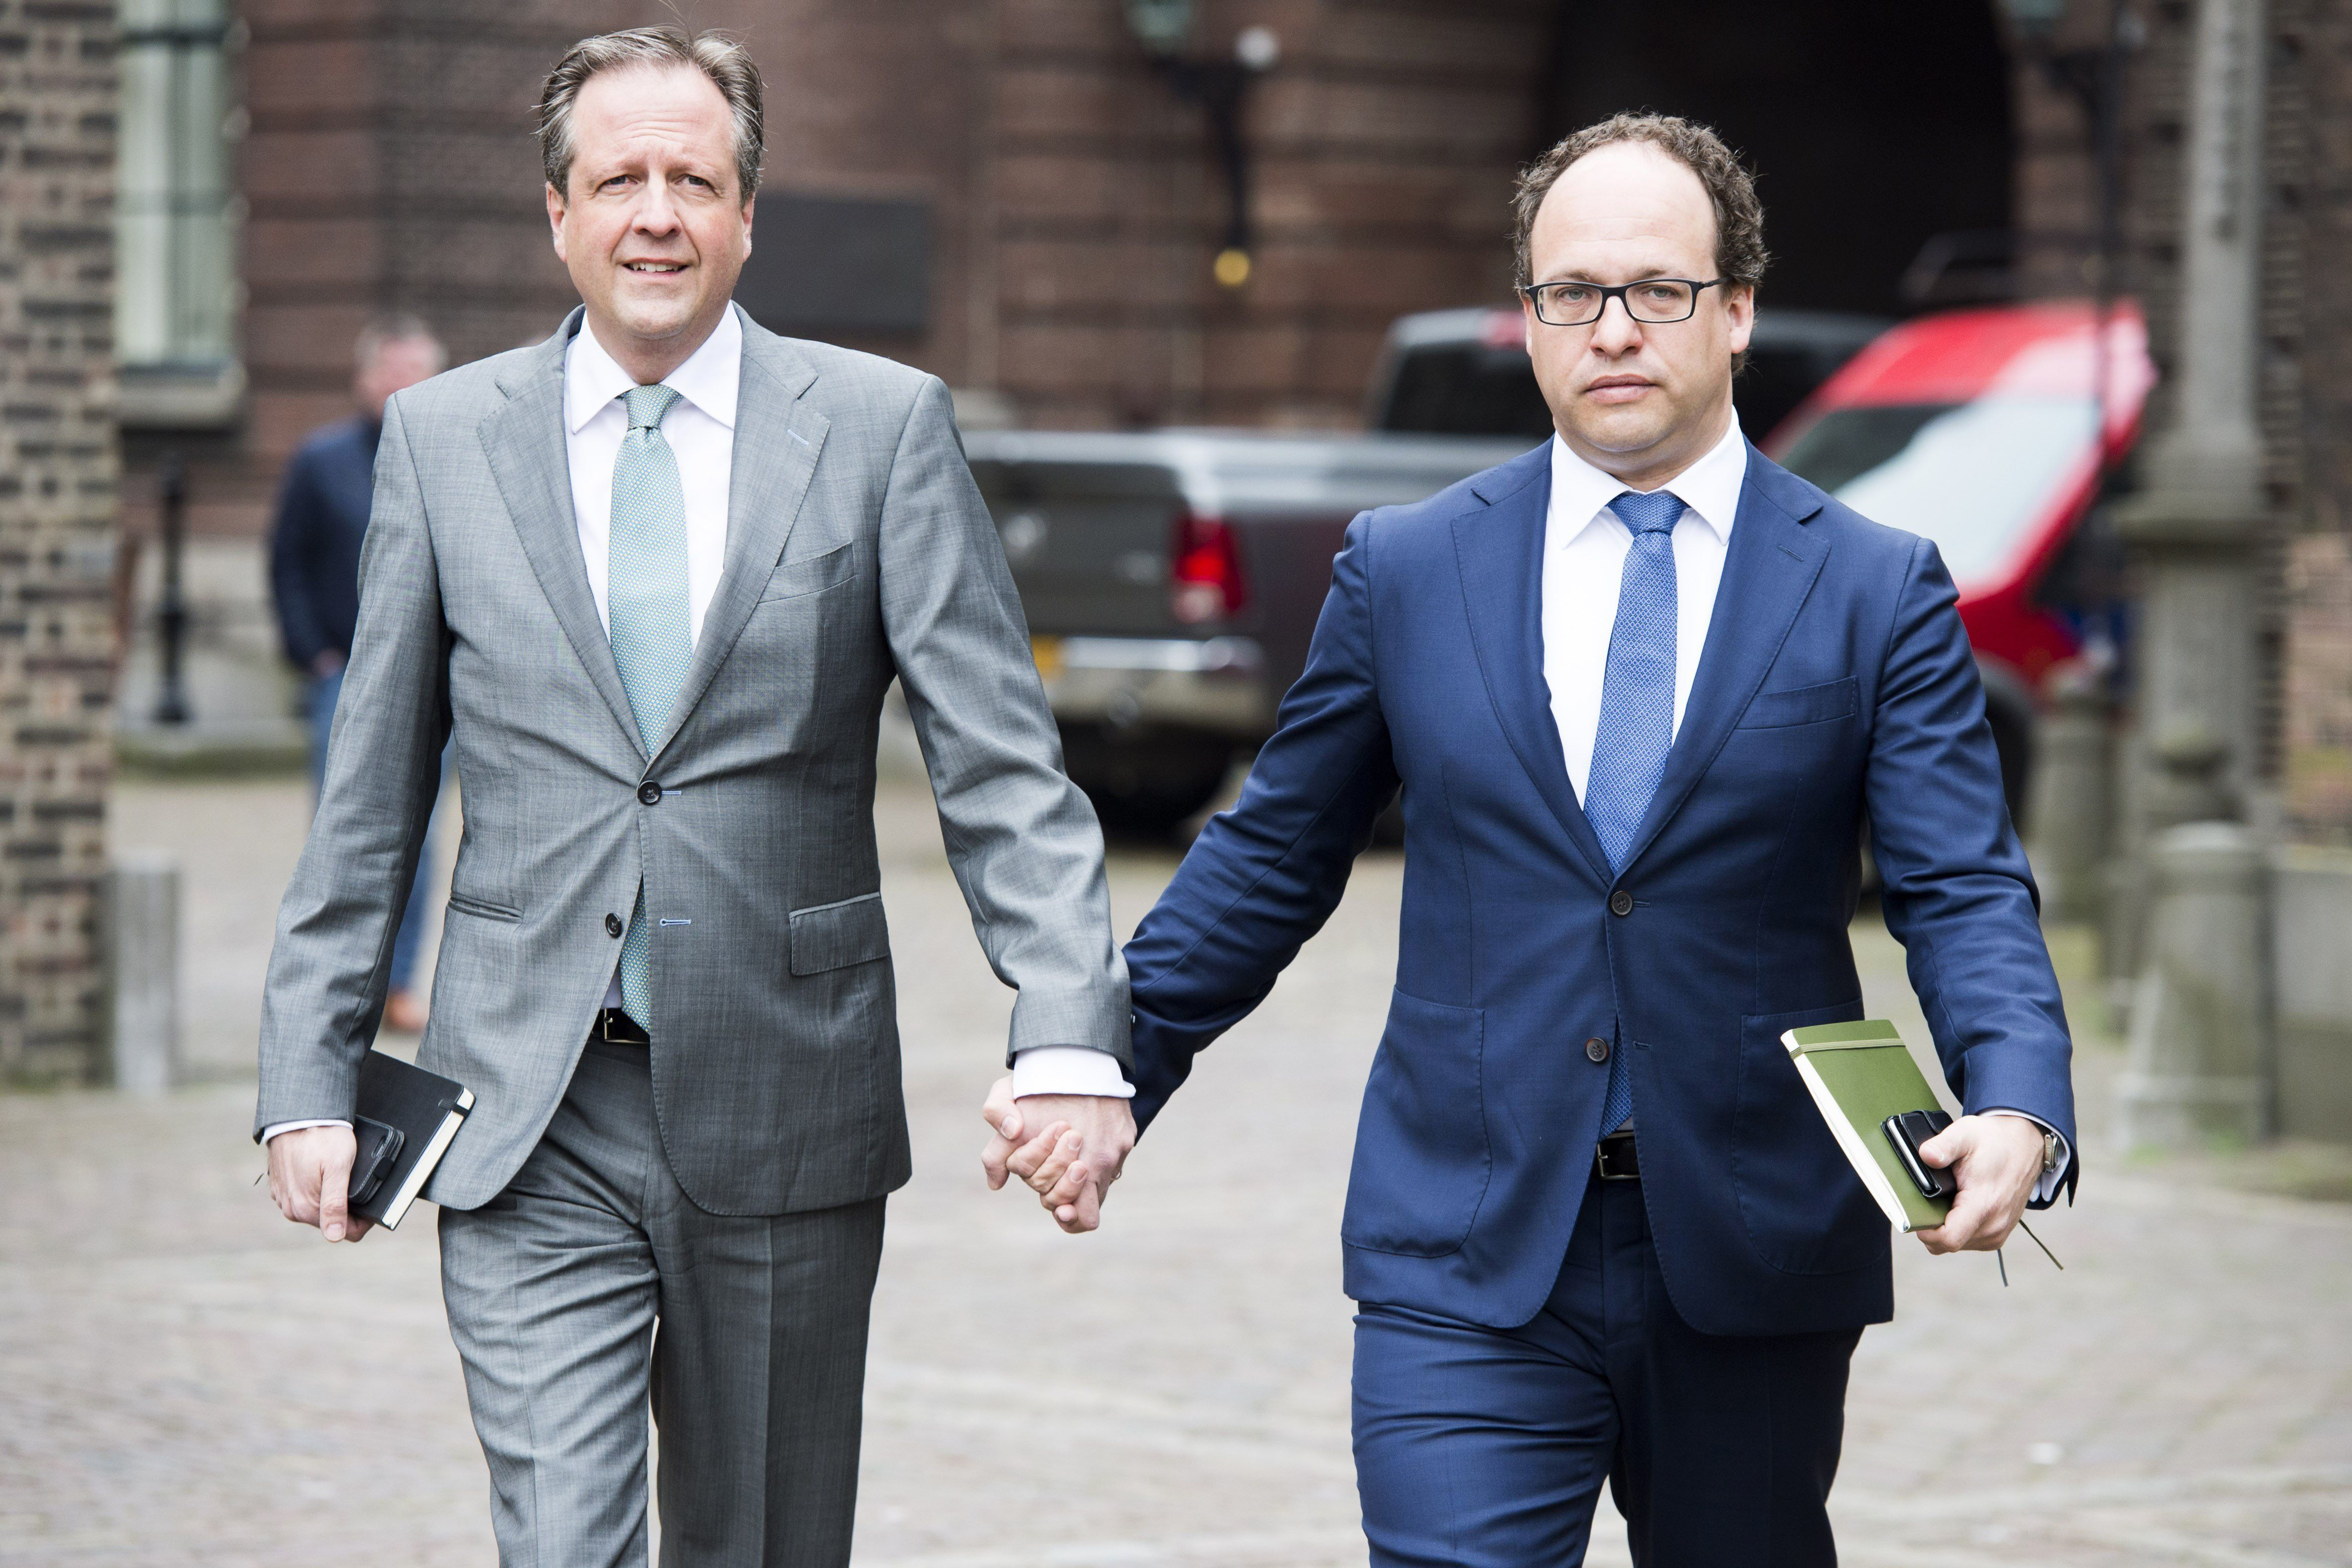 Straight Men Are Suddenly Holding Hands For A Beautiful